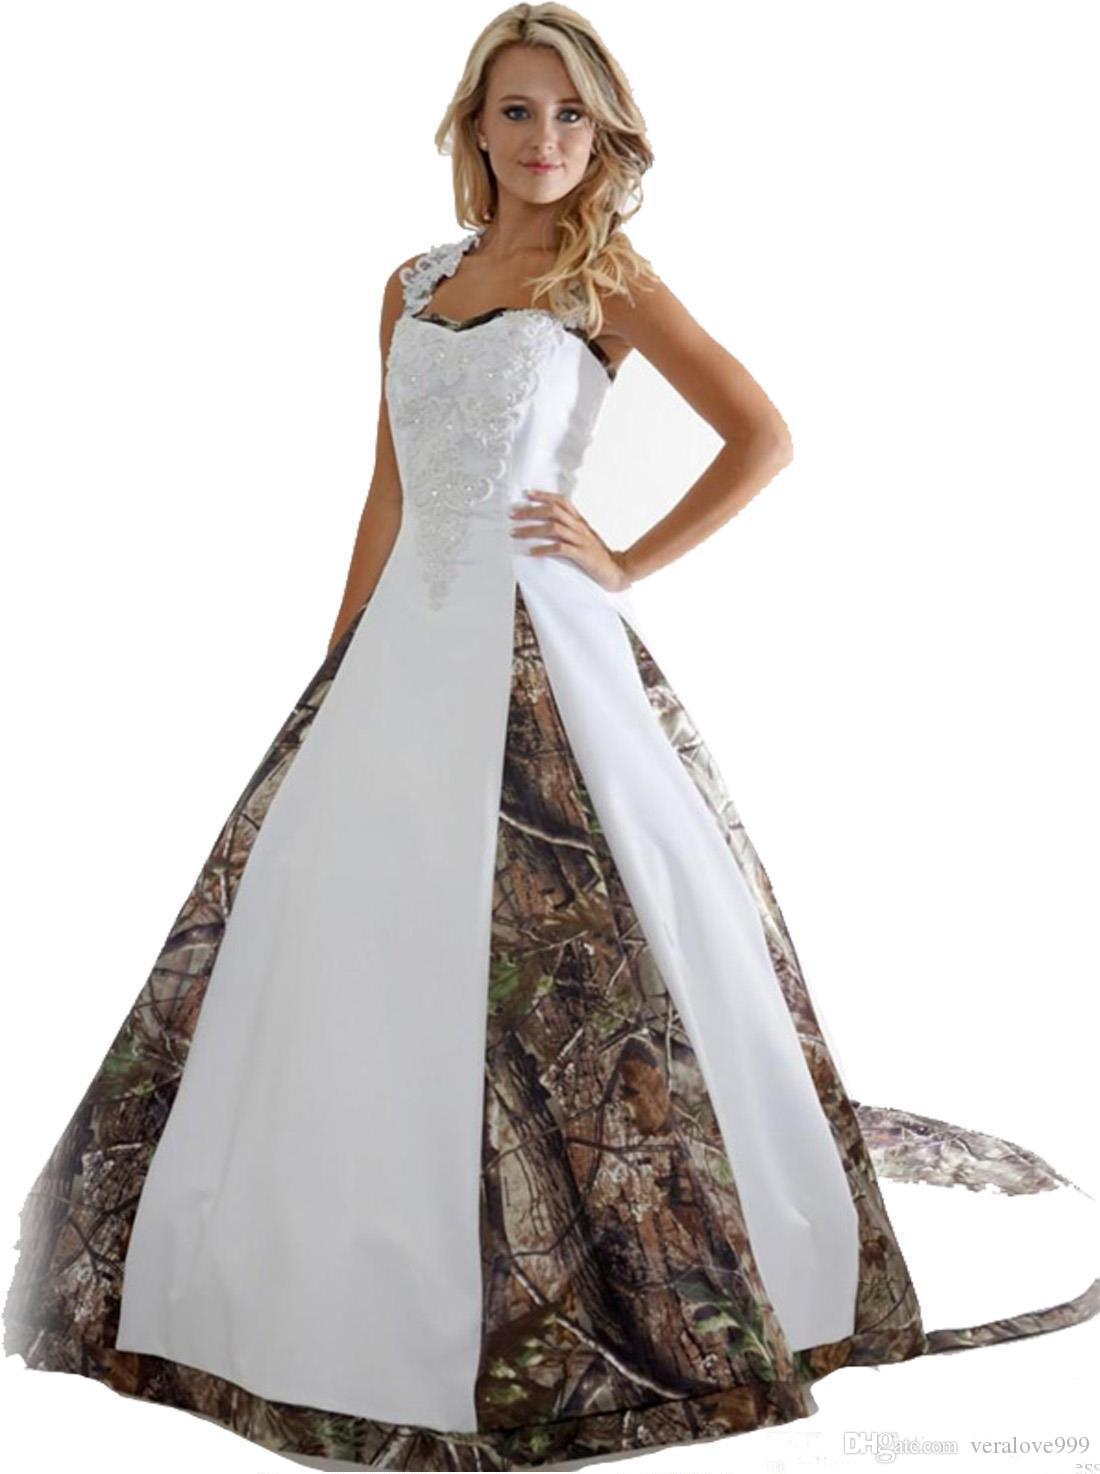 Exciting Appliques Ball Gown Long Discount 2018 New Camo Wedding Dresses Appliques Ball Gown Long Camouflagewedding Party Dress Bridal Gowns Romantic Lace Wedding Dresses Wedding Discount 2018 New Cam wedding dress Camo Wedding Dresses